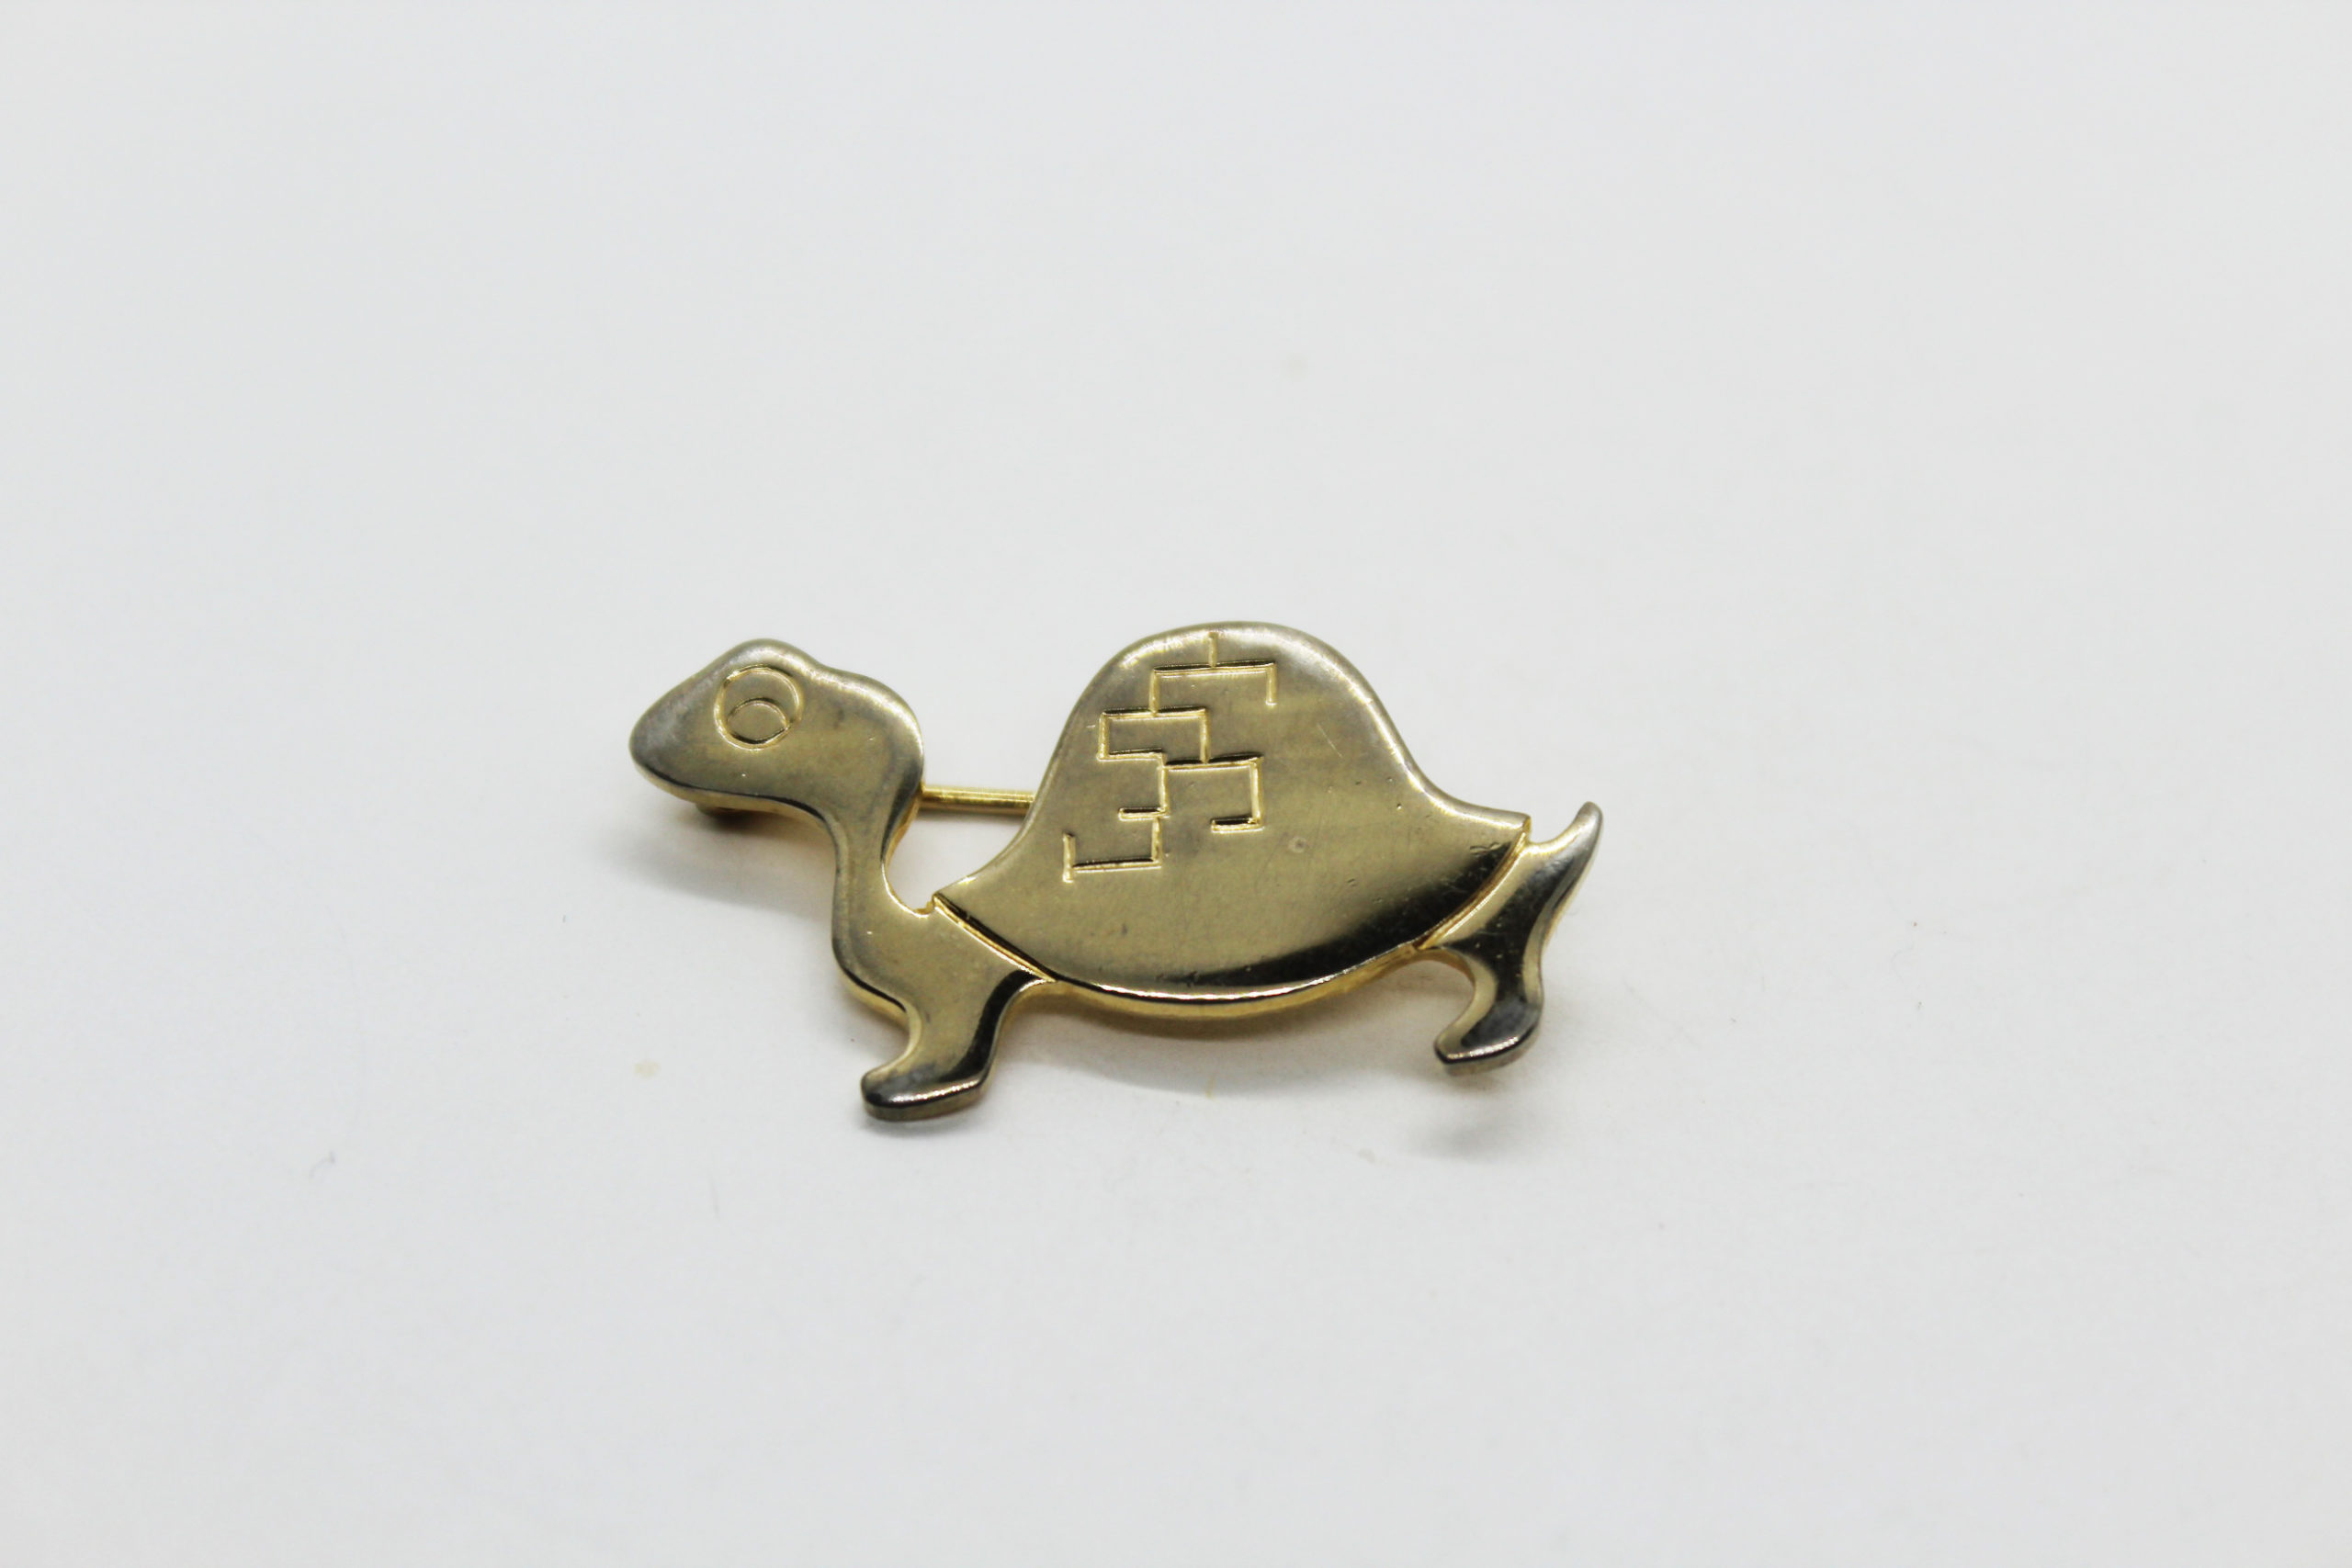 Vintage Sarah Coventry Turtle Brooch at Whispering City RVA